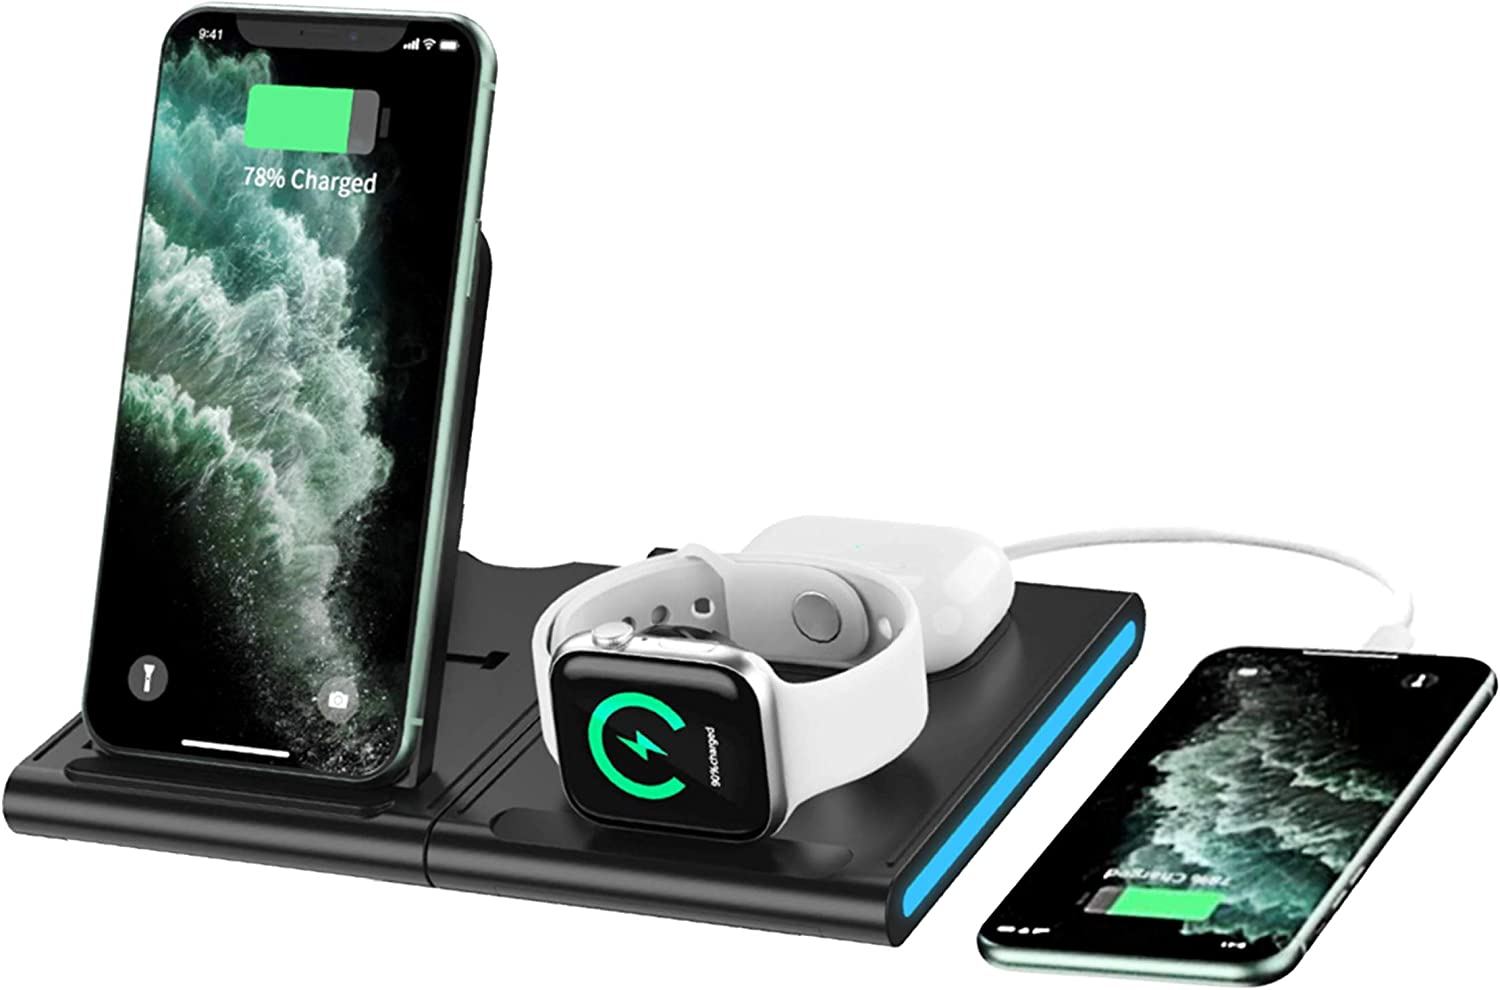 GoldWin 4-in1 Fast Wireless Charging Station, Qi Wireless Charge 4 Devices 15W, Bundled with QC 3.0 Fast Charge Adapter. for iPhones, Airpods, Apple Watch, and Many Other Phones.